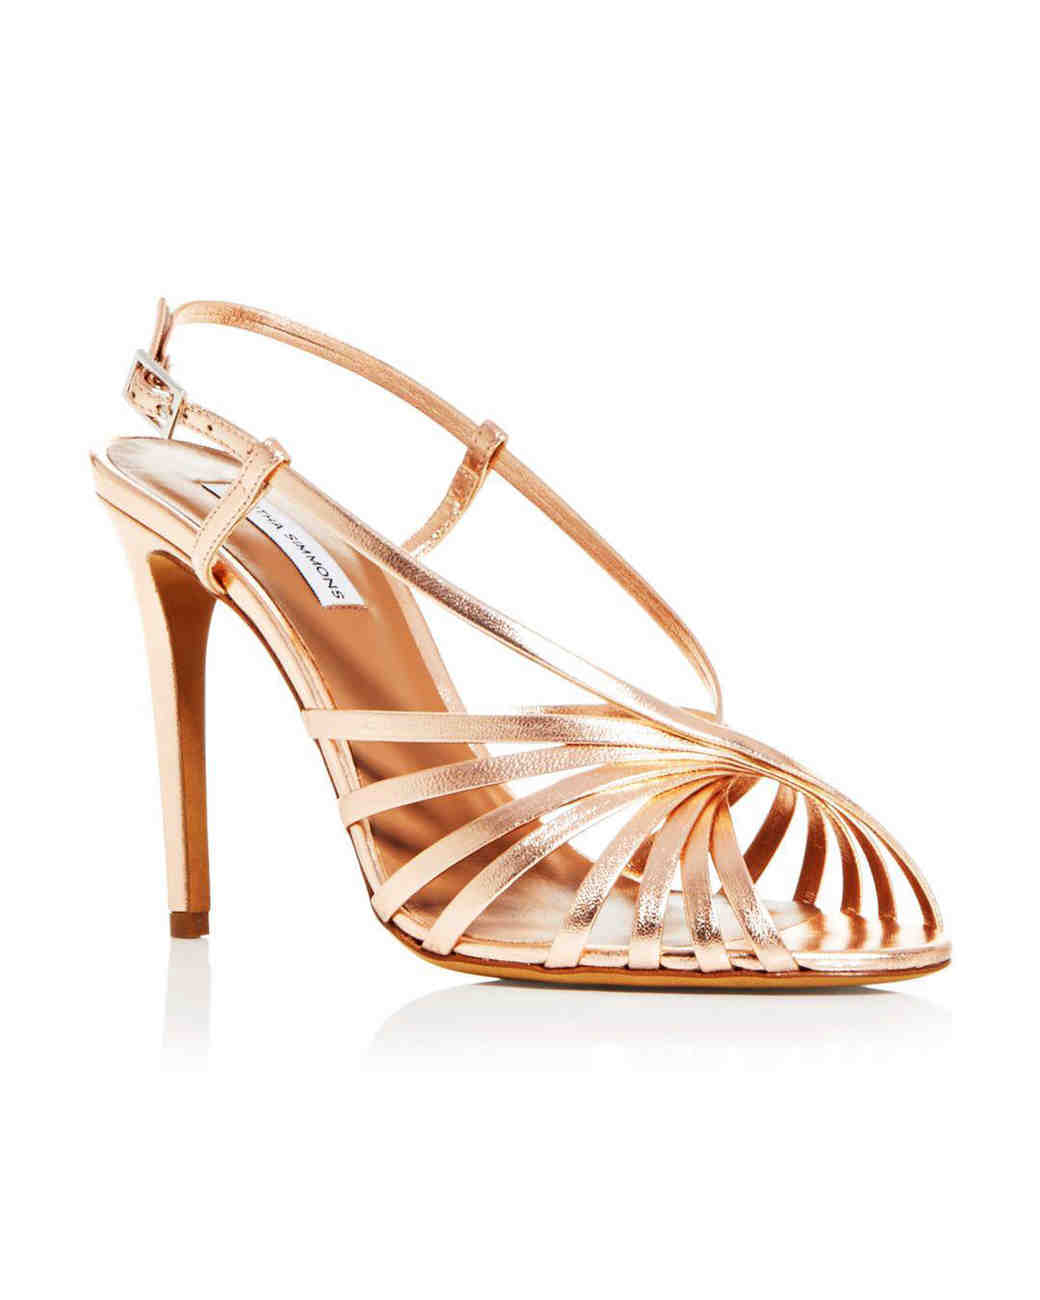 metallic leather sling-back sandals bridesmaid shoes